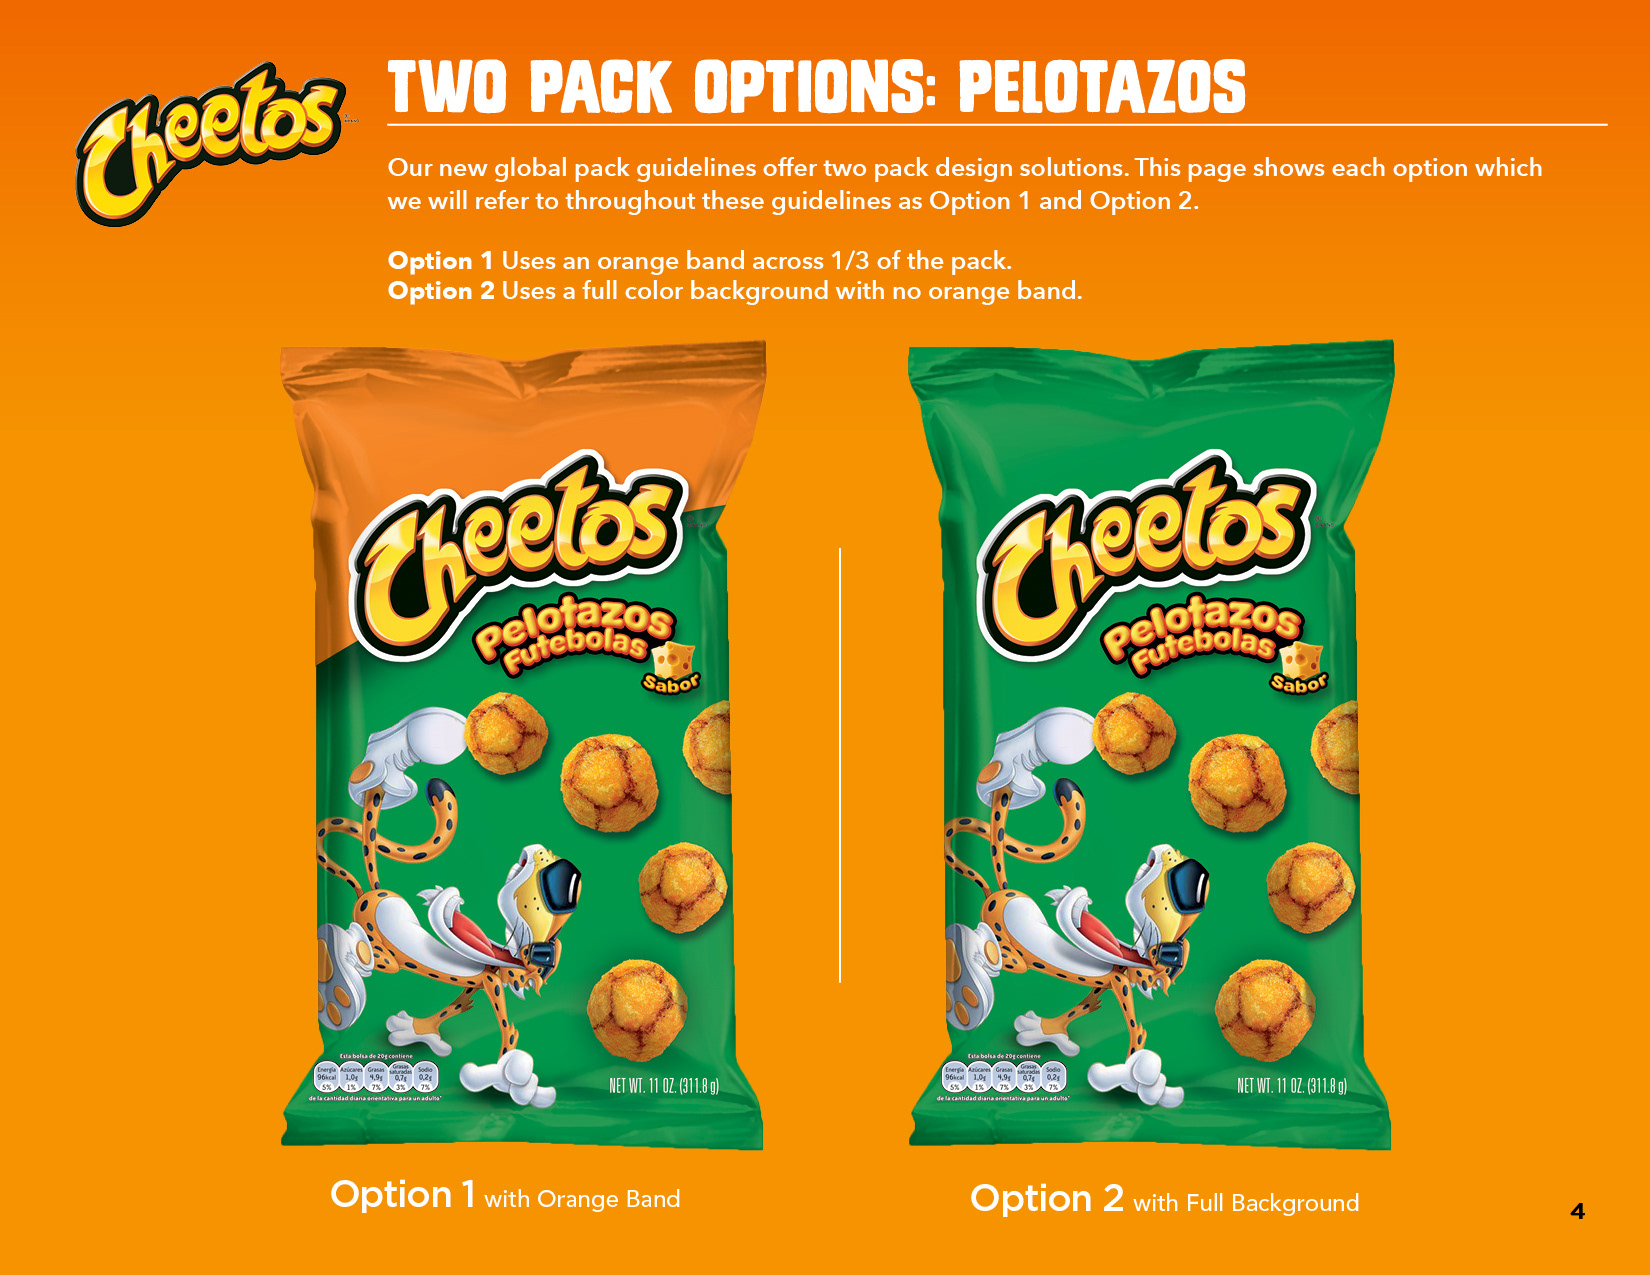 Amy Cartolano - Cheetos Style Guide: Design